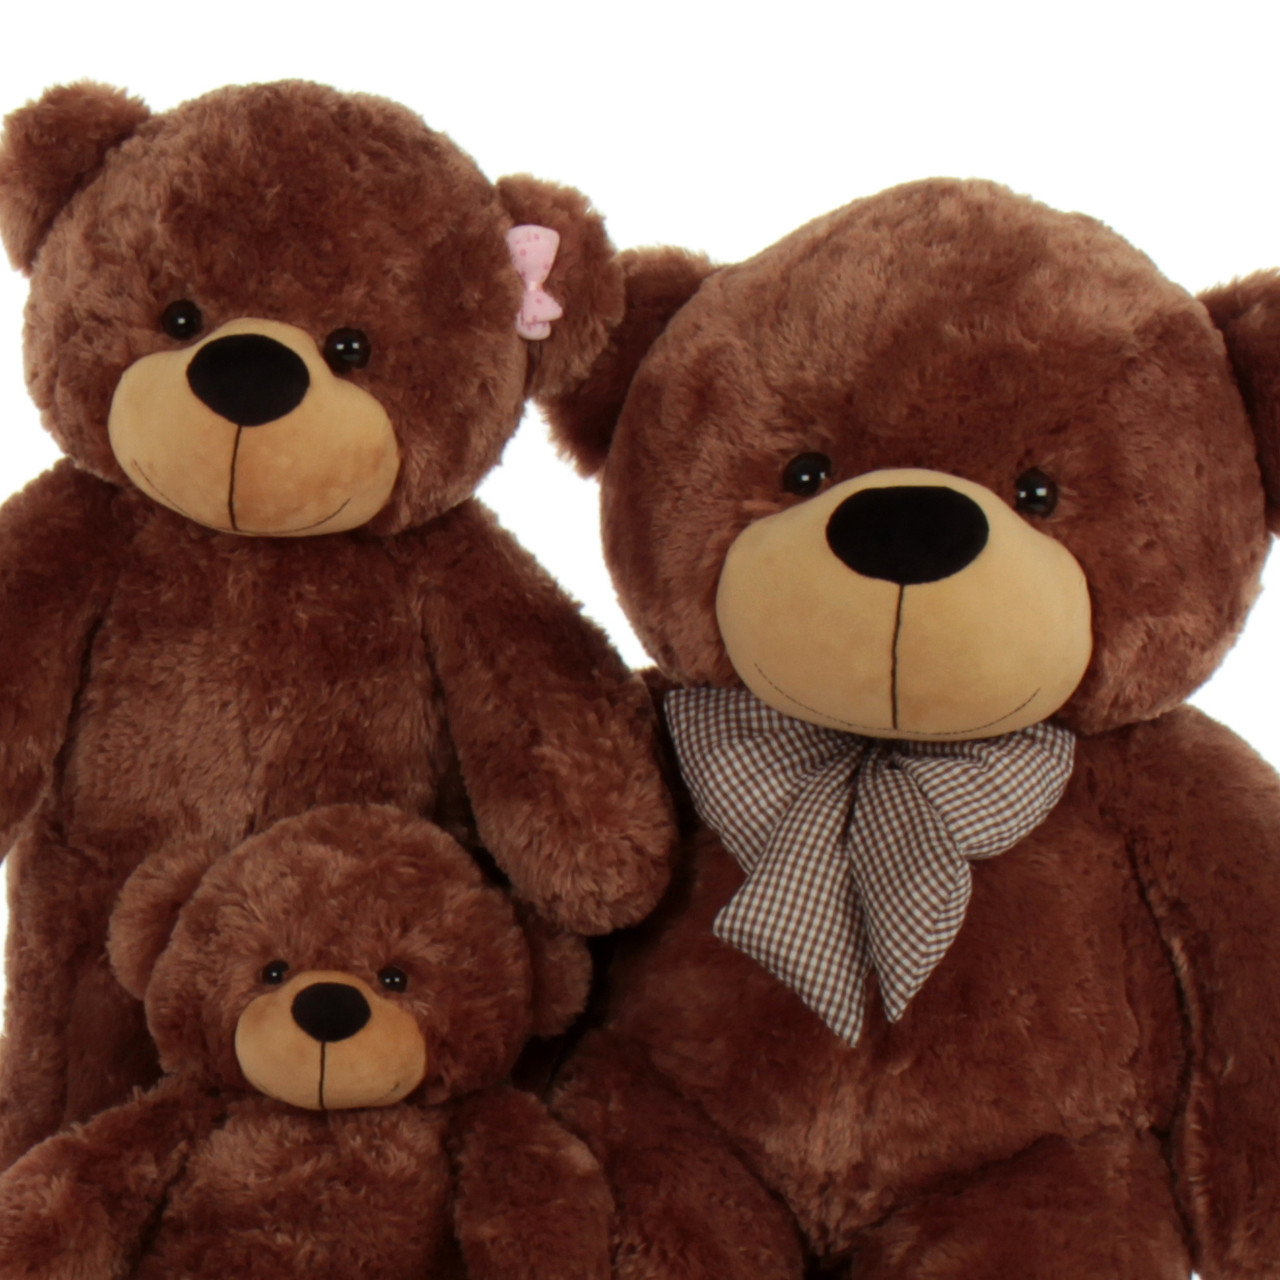 af01be2644c Adorable Brown Bears Set Of three Gift Huge Family Giant Teddy